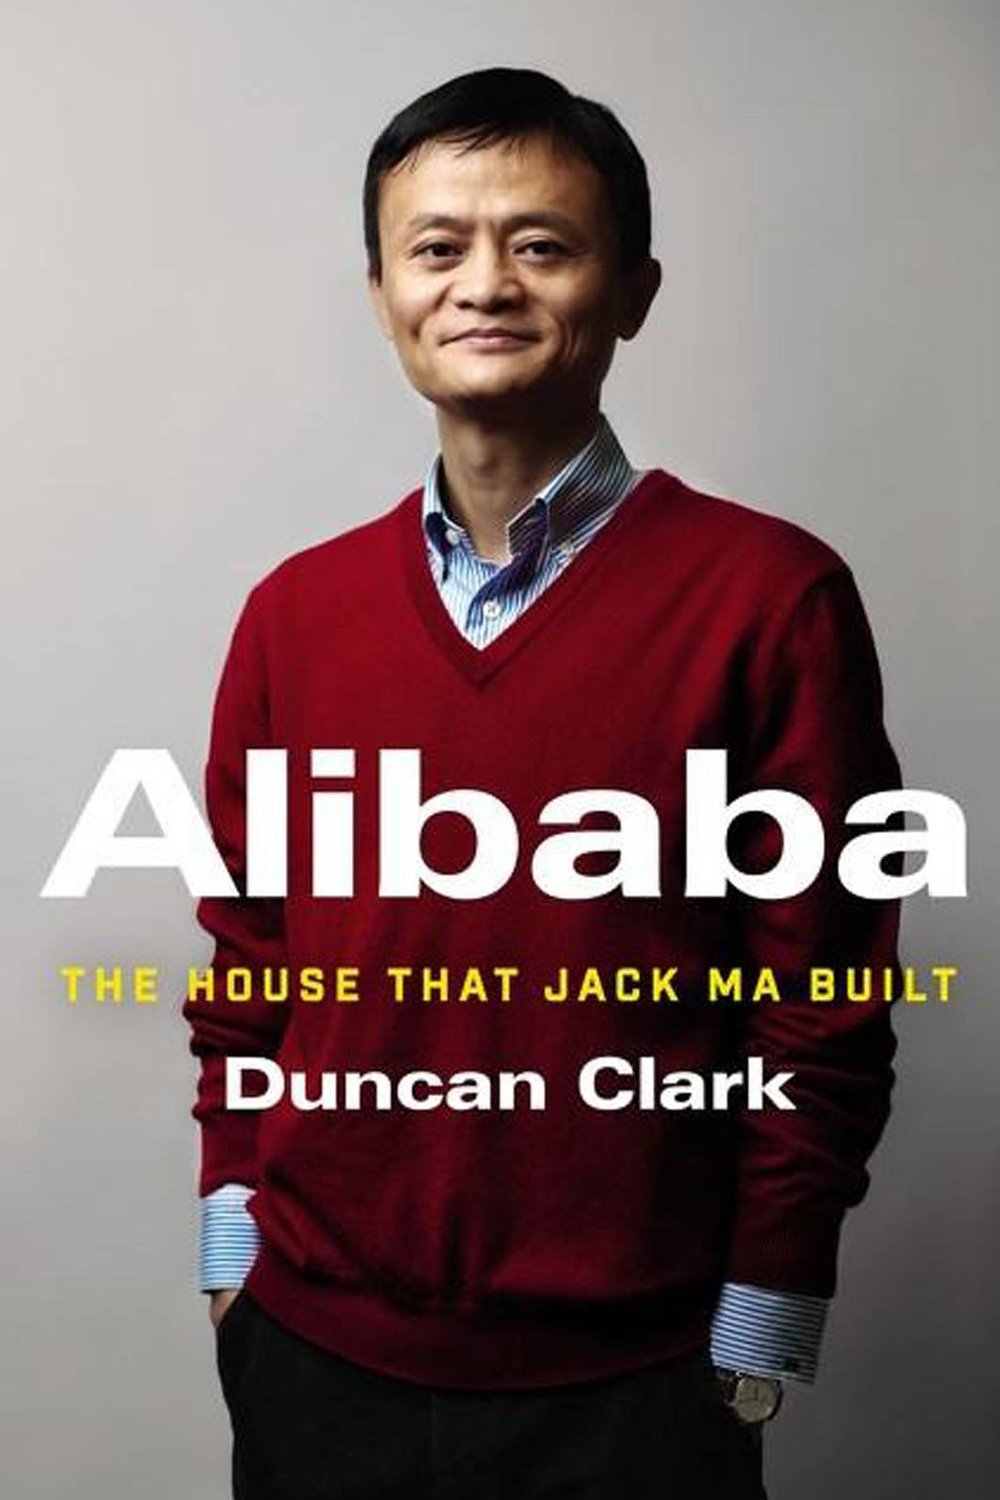 Front cover for 'Alibaba: The house that Jack Ma built.'